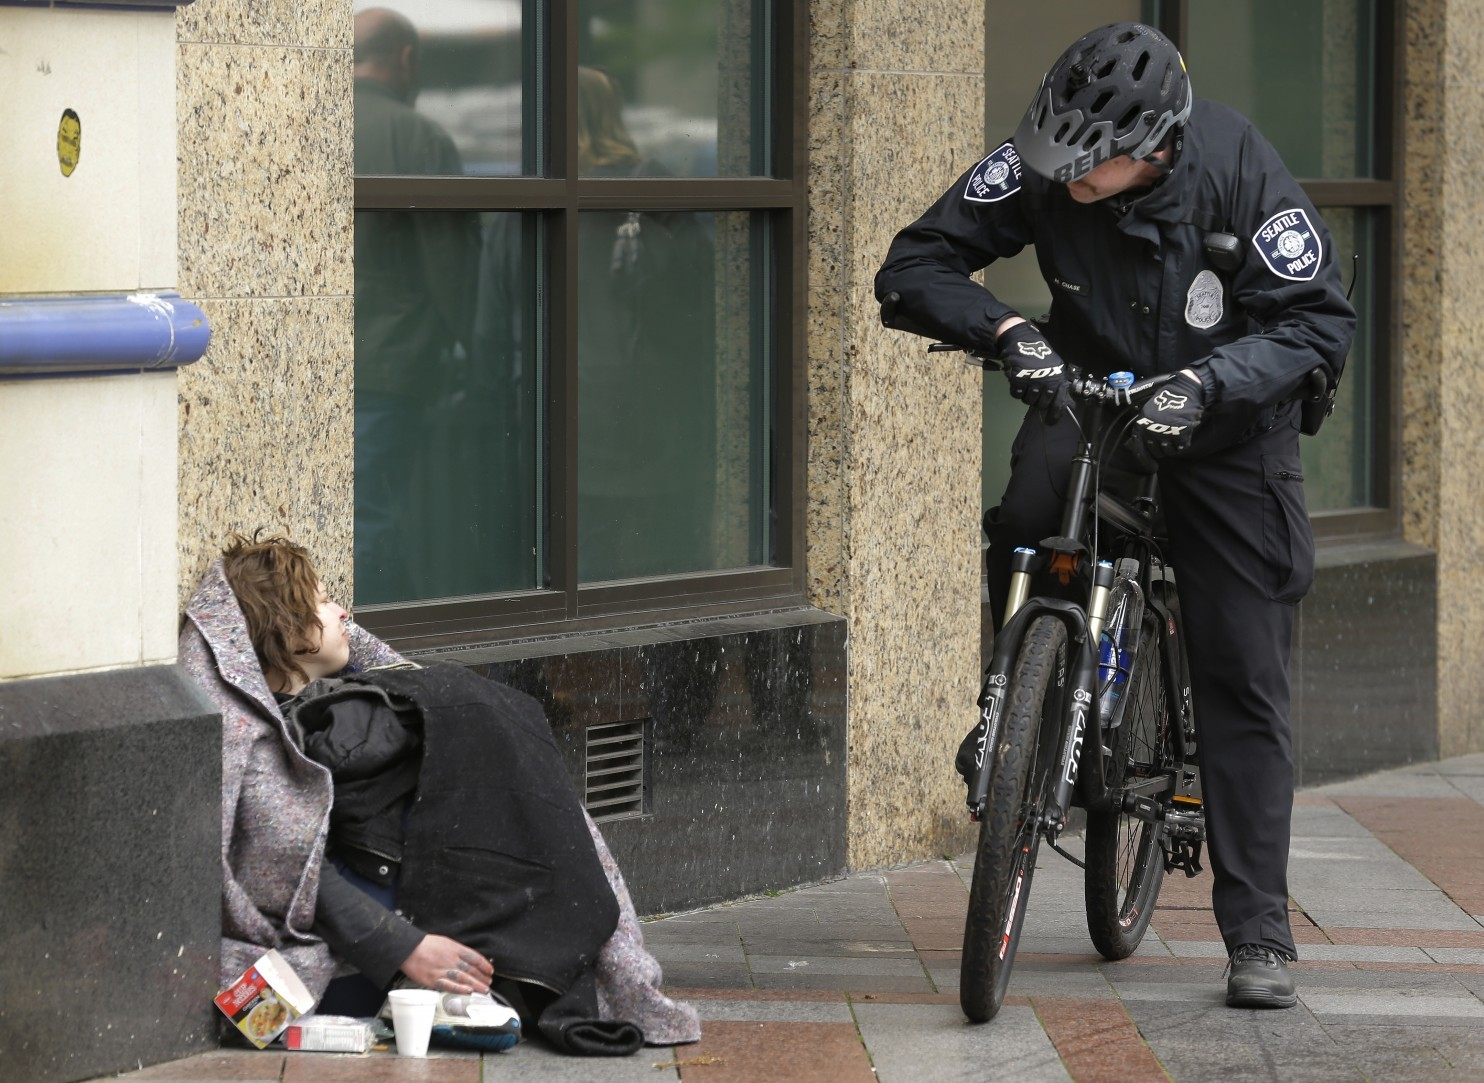 a police officer speaks with a person resting on the street